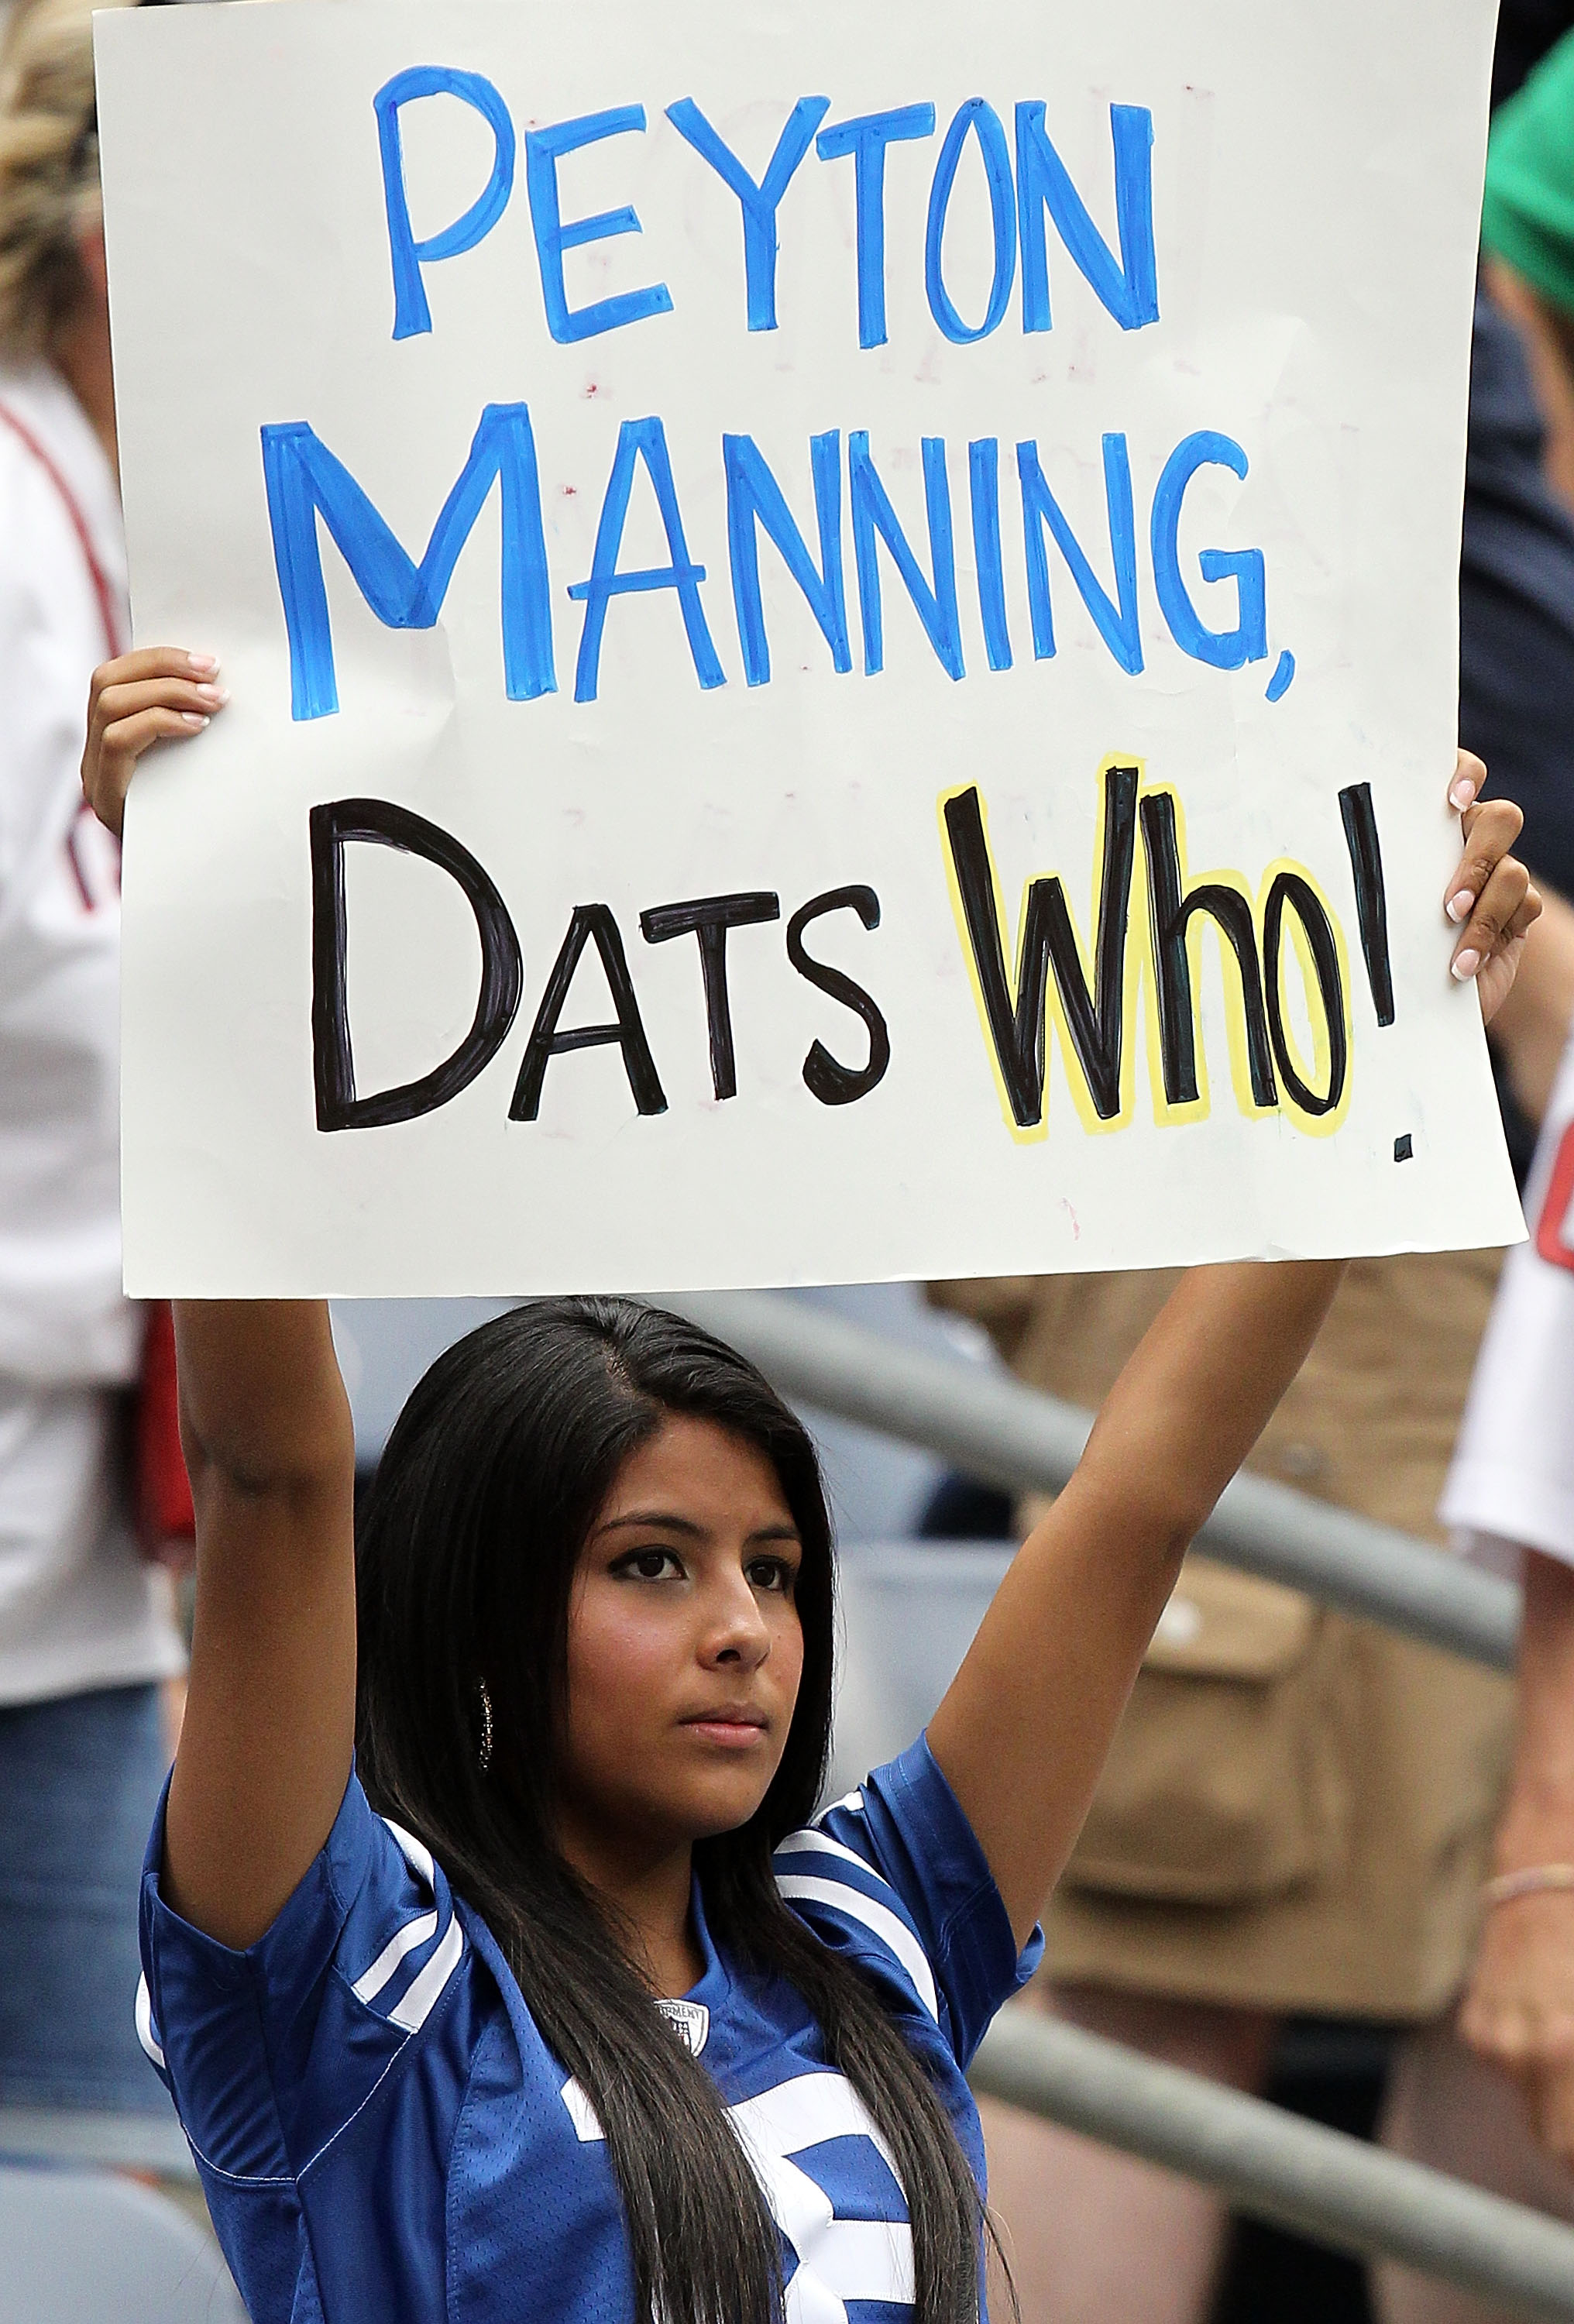 HOUSTON - SEPTEMBER 12: A fan of the Indianapolis Colts holds up a sign for Peyton Manning during the NFL season opener against the Houston Texans at Reliant Stadium on September 12, 2010 in Houston, Texas.  (Photo by Ronald Martinez/Getty Images)